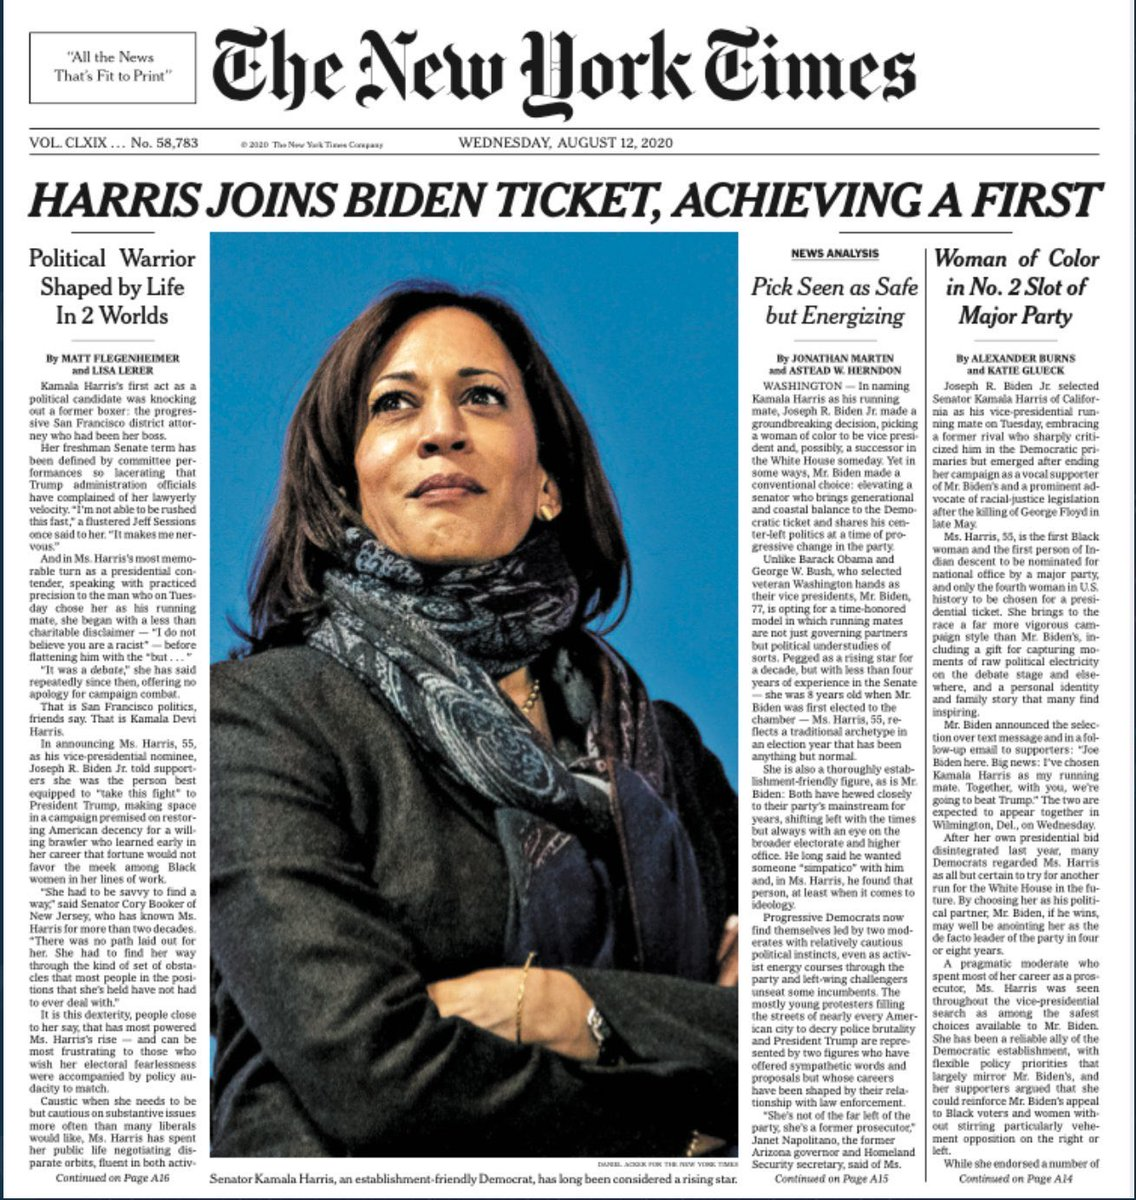 Tomorrow's NYT front page >>